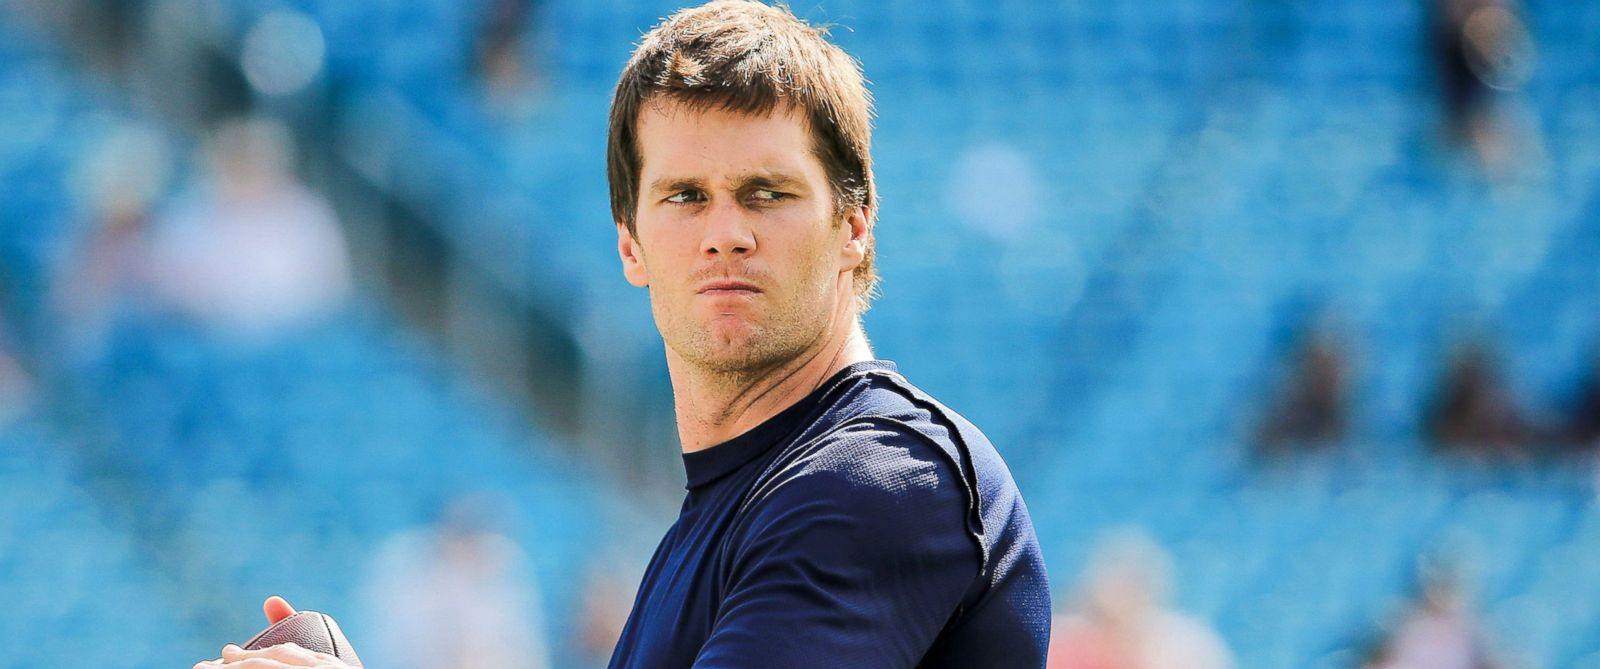 PHOTO: Tom Brady #12 of the New England Patriots warms up before the game against the Miami Dolphins at Sun Life Stadium, Jan. 3, 2016, in Miami Gardens, Florida.